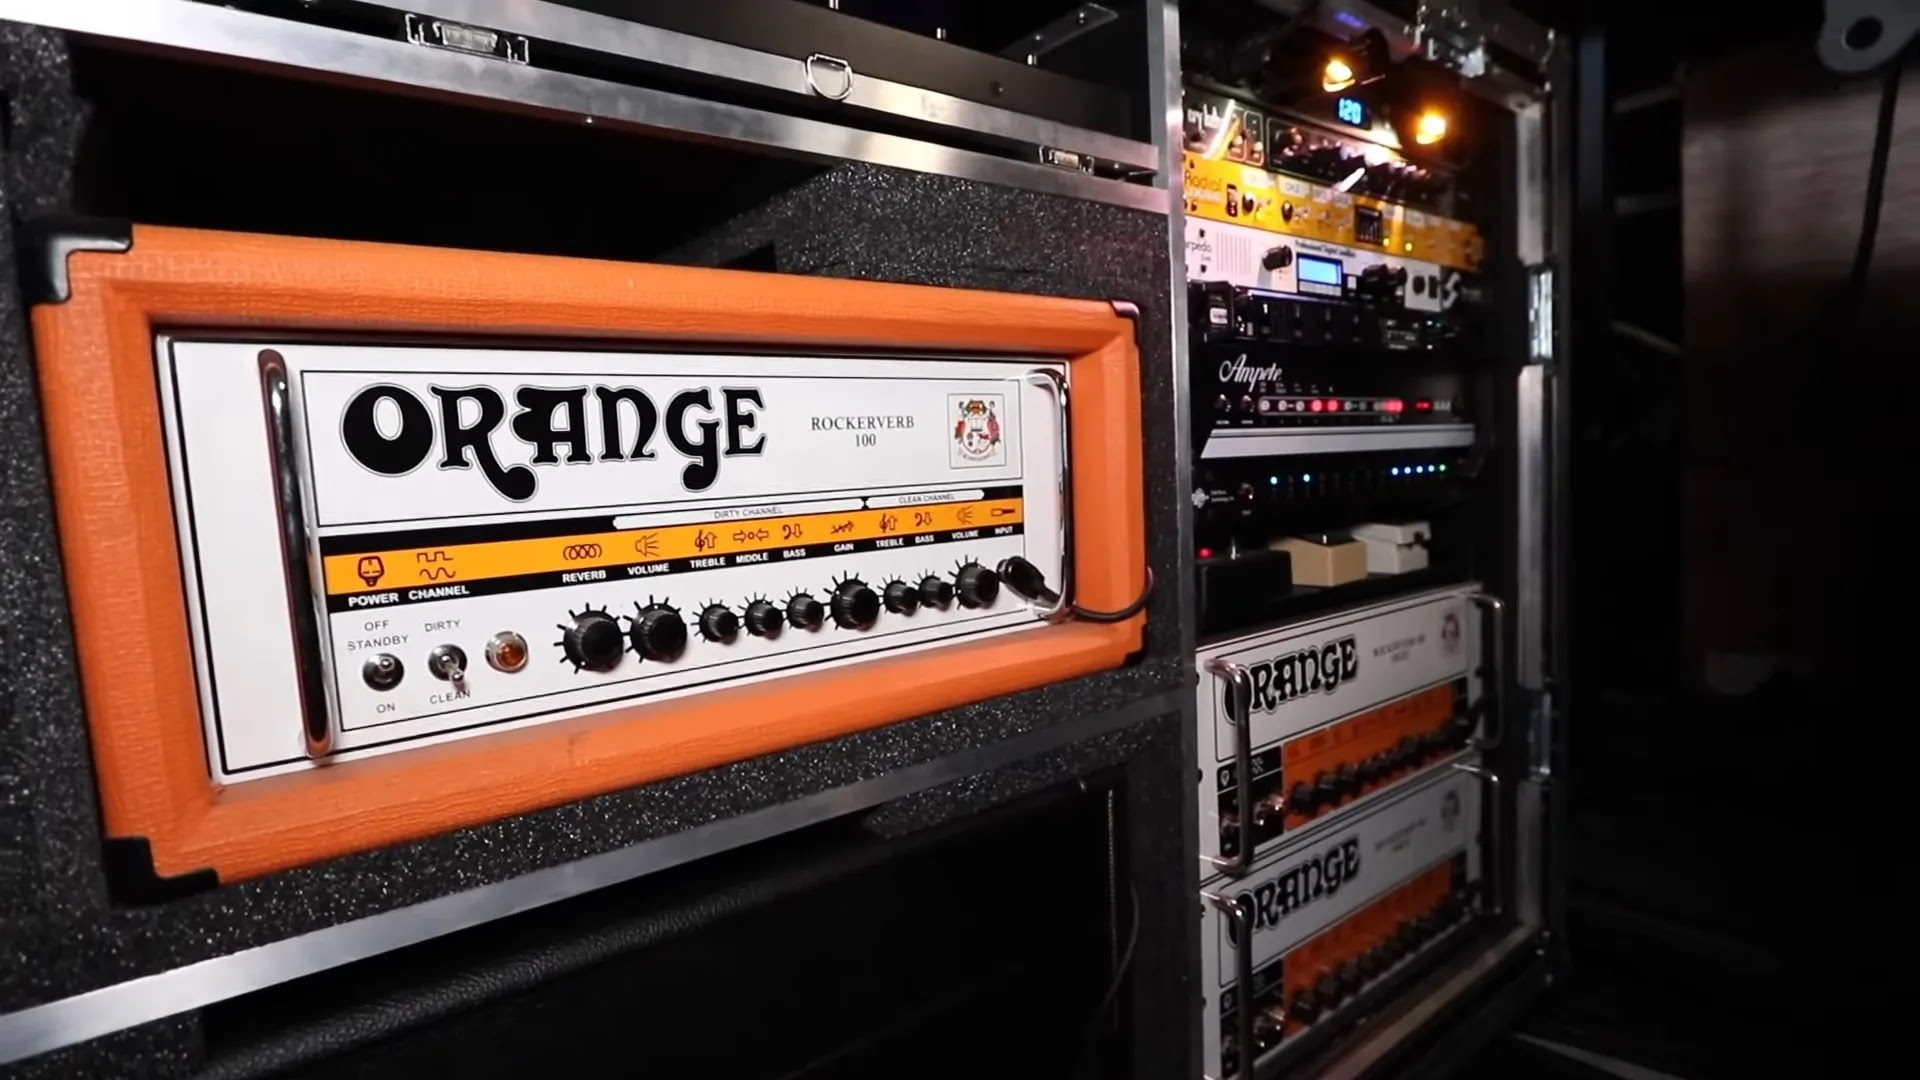 Orange Rockerverb 100 Mark 3